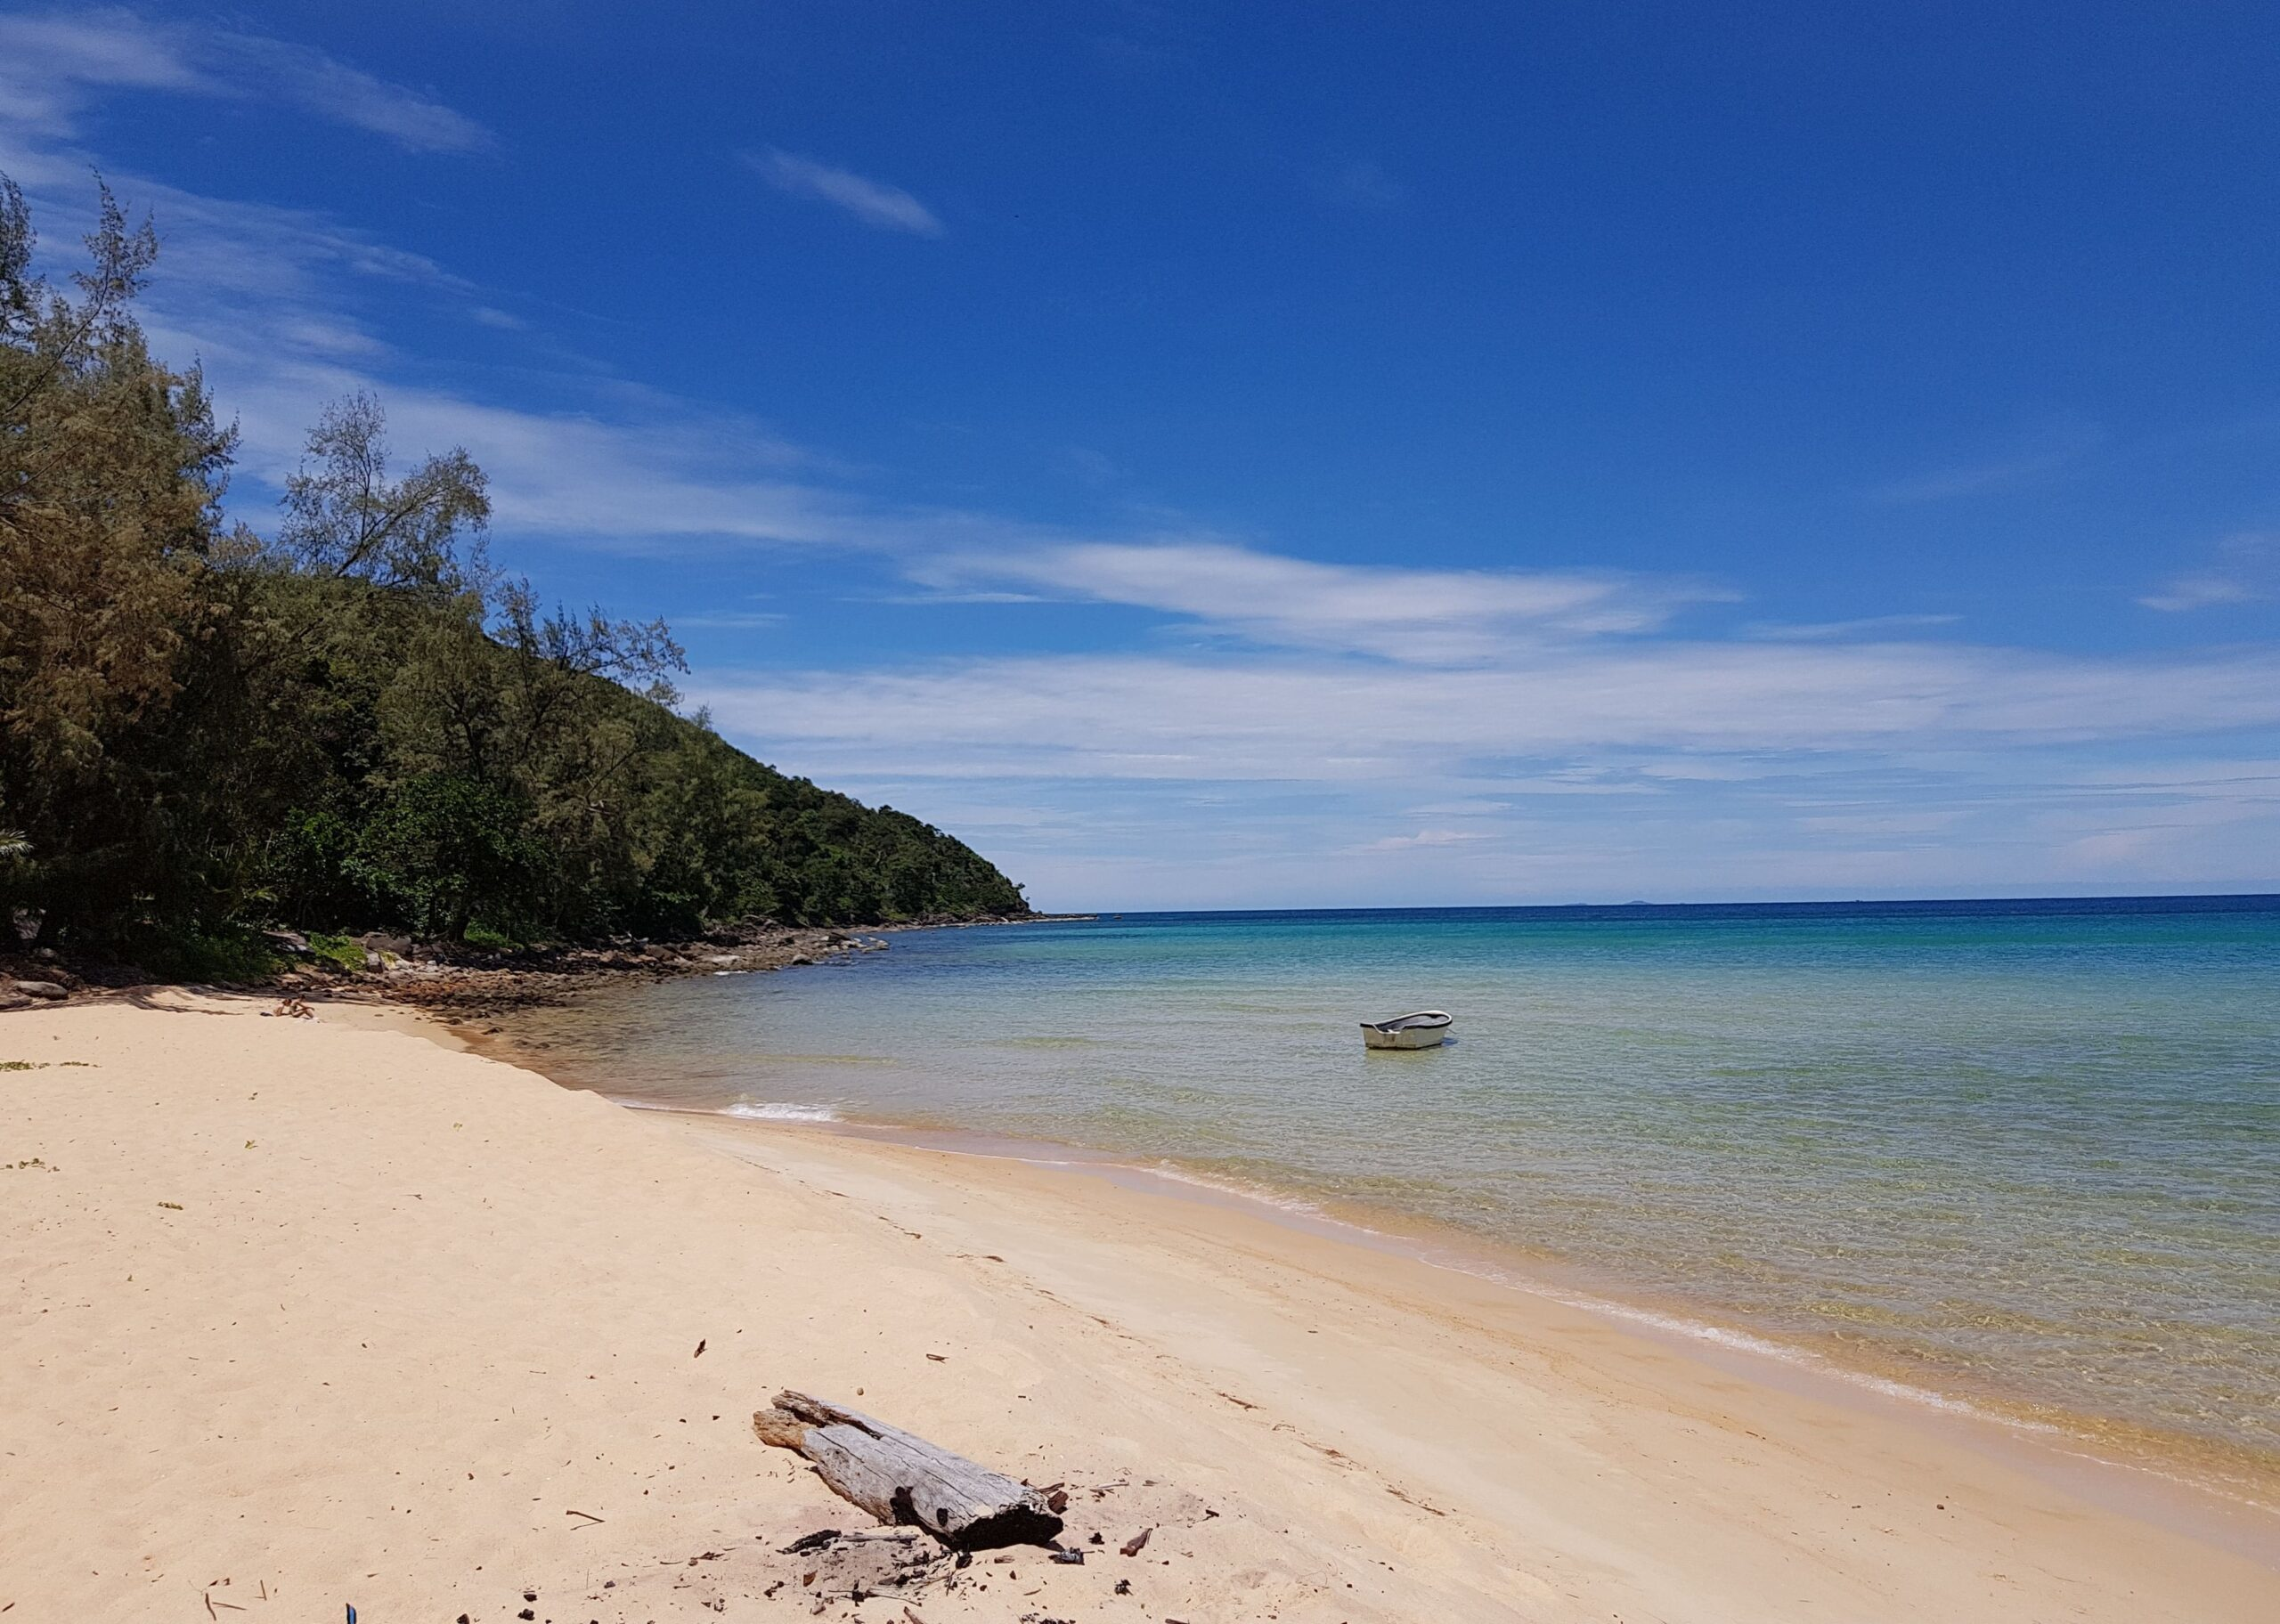 The beach at Koh Rong Samloem with a boat in the water